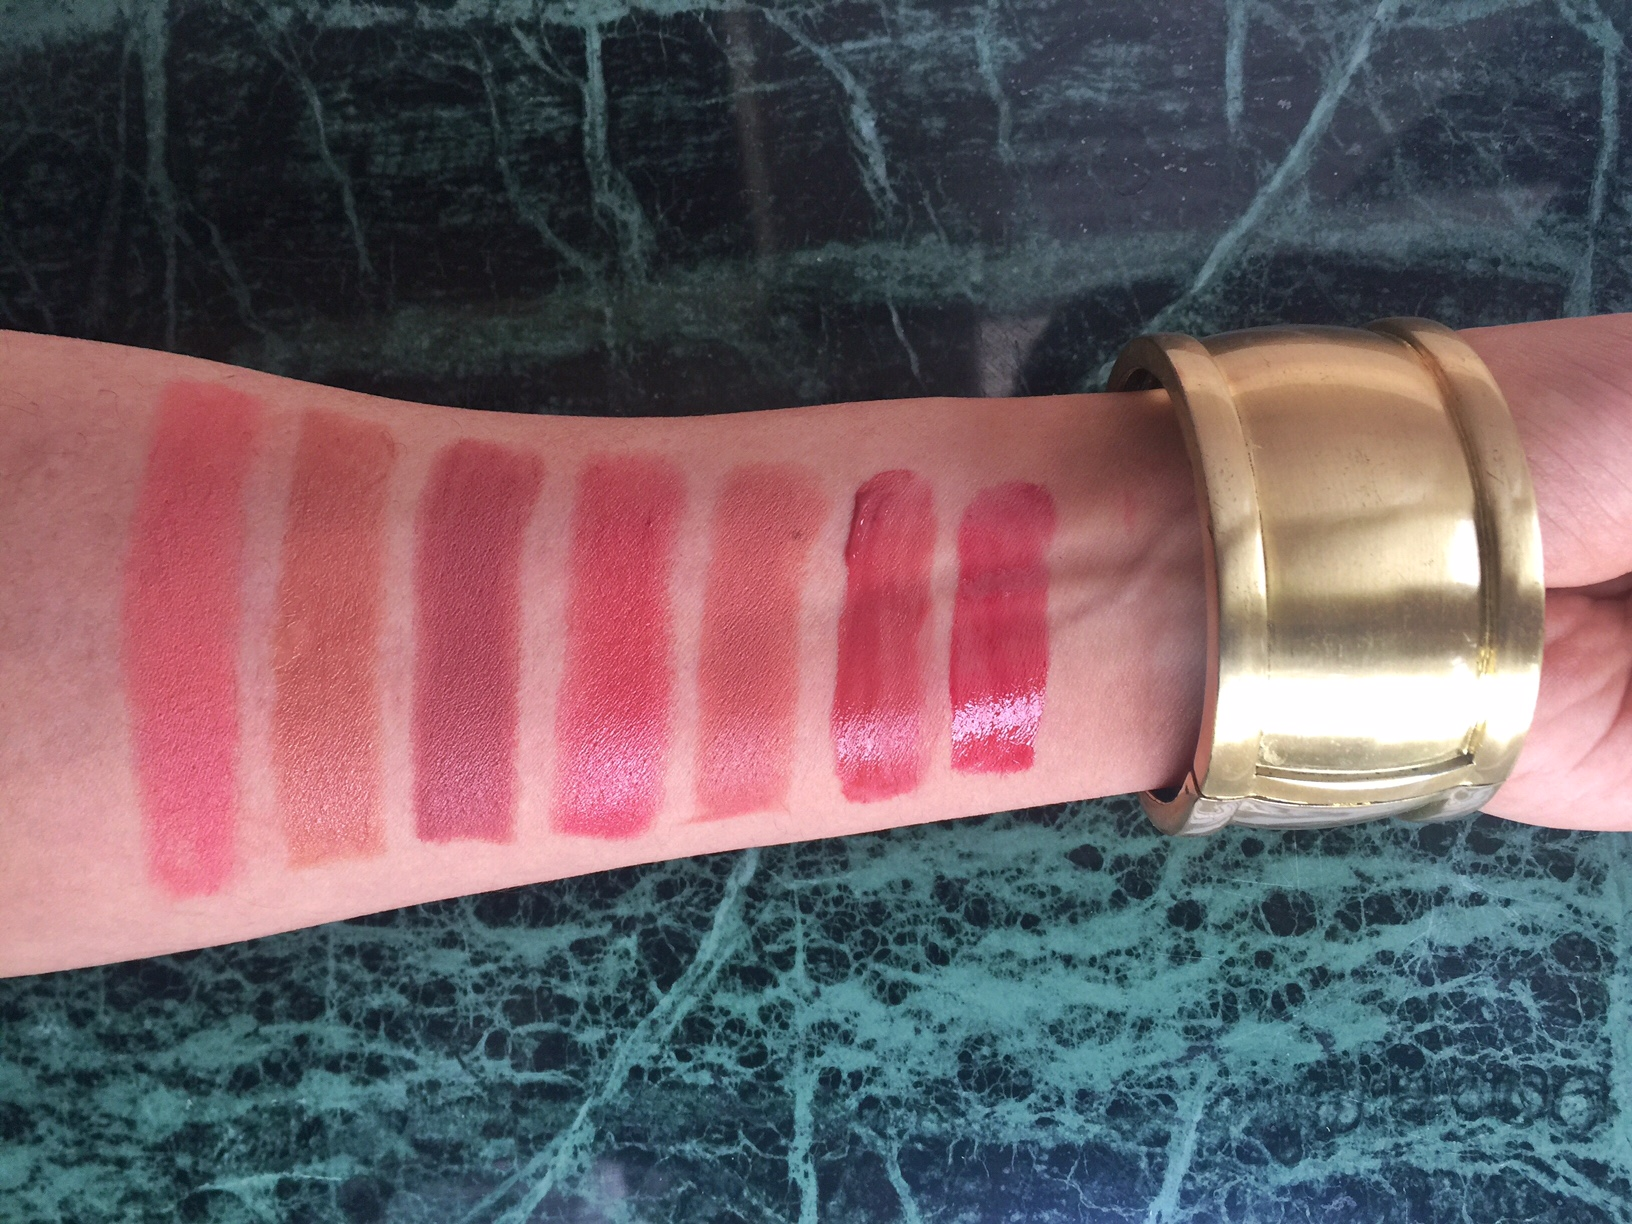 From left:  M.A.C Velvetease Lip Pencil in Frolic, Estée Lauder Victoria Beckham Lipstick in Brazilian Nude, Bobbi Brown Lipstick in Brown, Elizabeth Arden Ceramide Lipstick in Coral, Chanel Rouge Allure in Angelique, YSL Baby Doll Kiss & Blush in 10, Smashbox Be Legendary Long-Wear Lip Lacquer in Muted Raspberry.